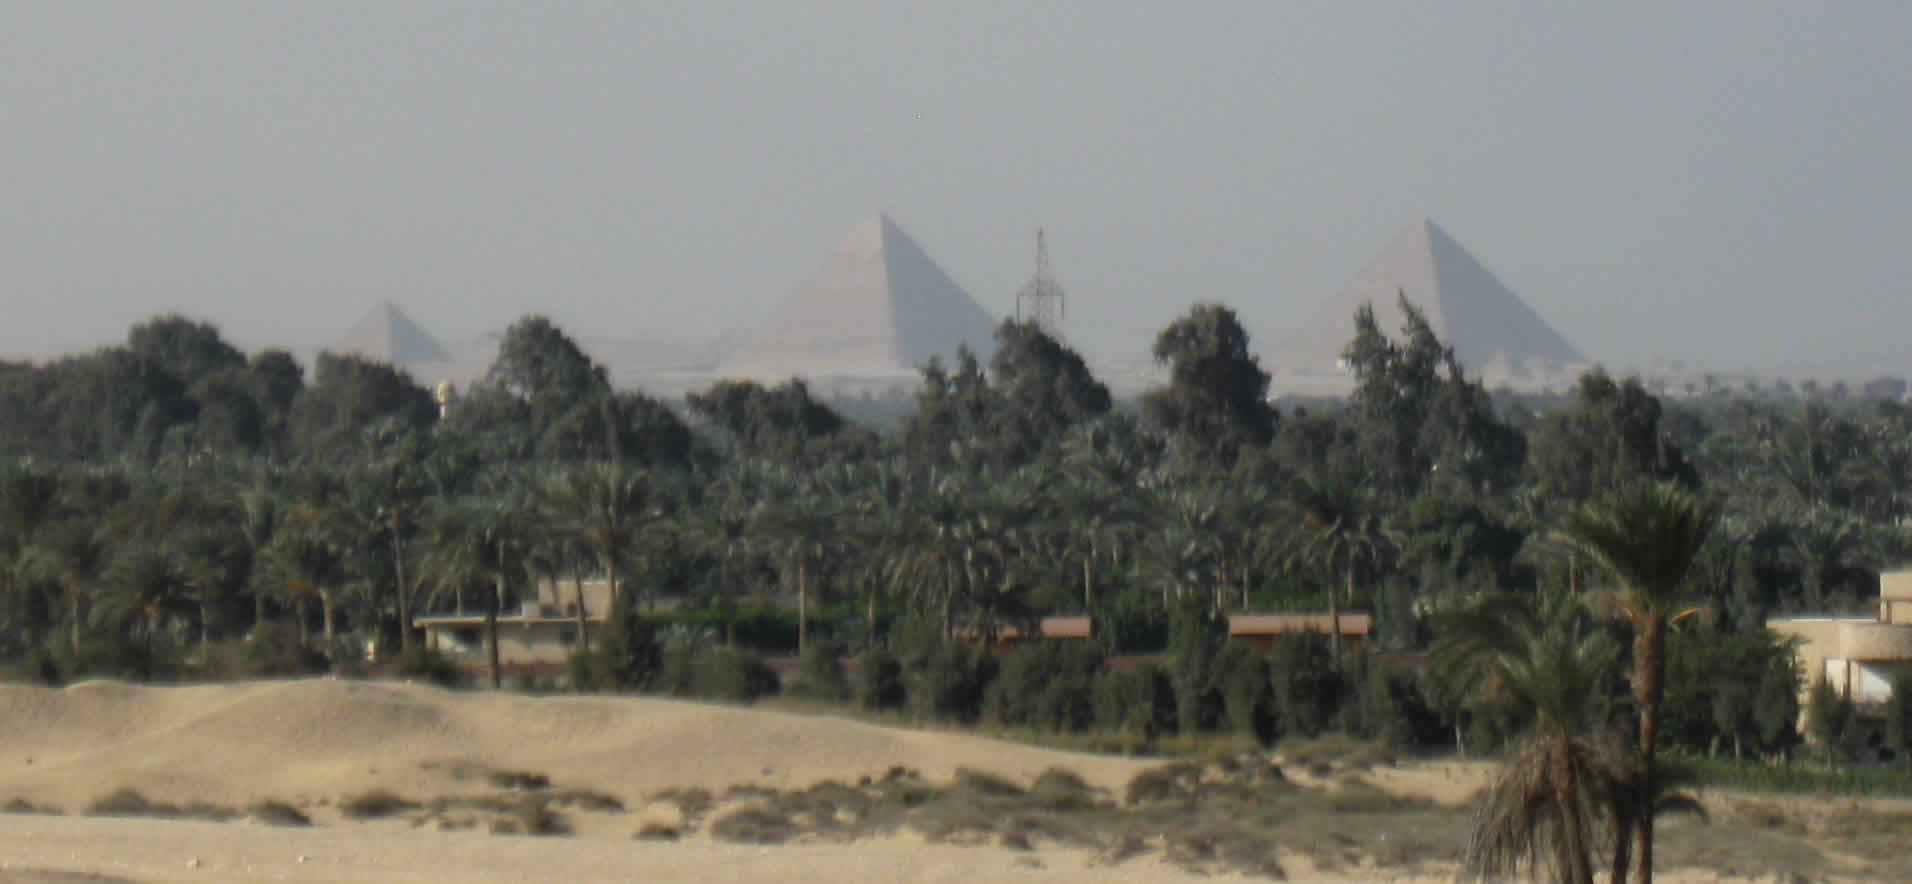 Looking at Giza from Abusir